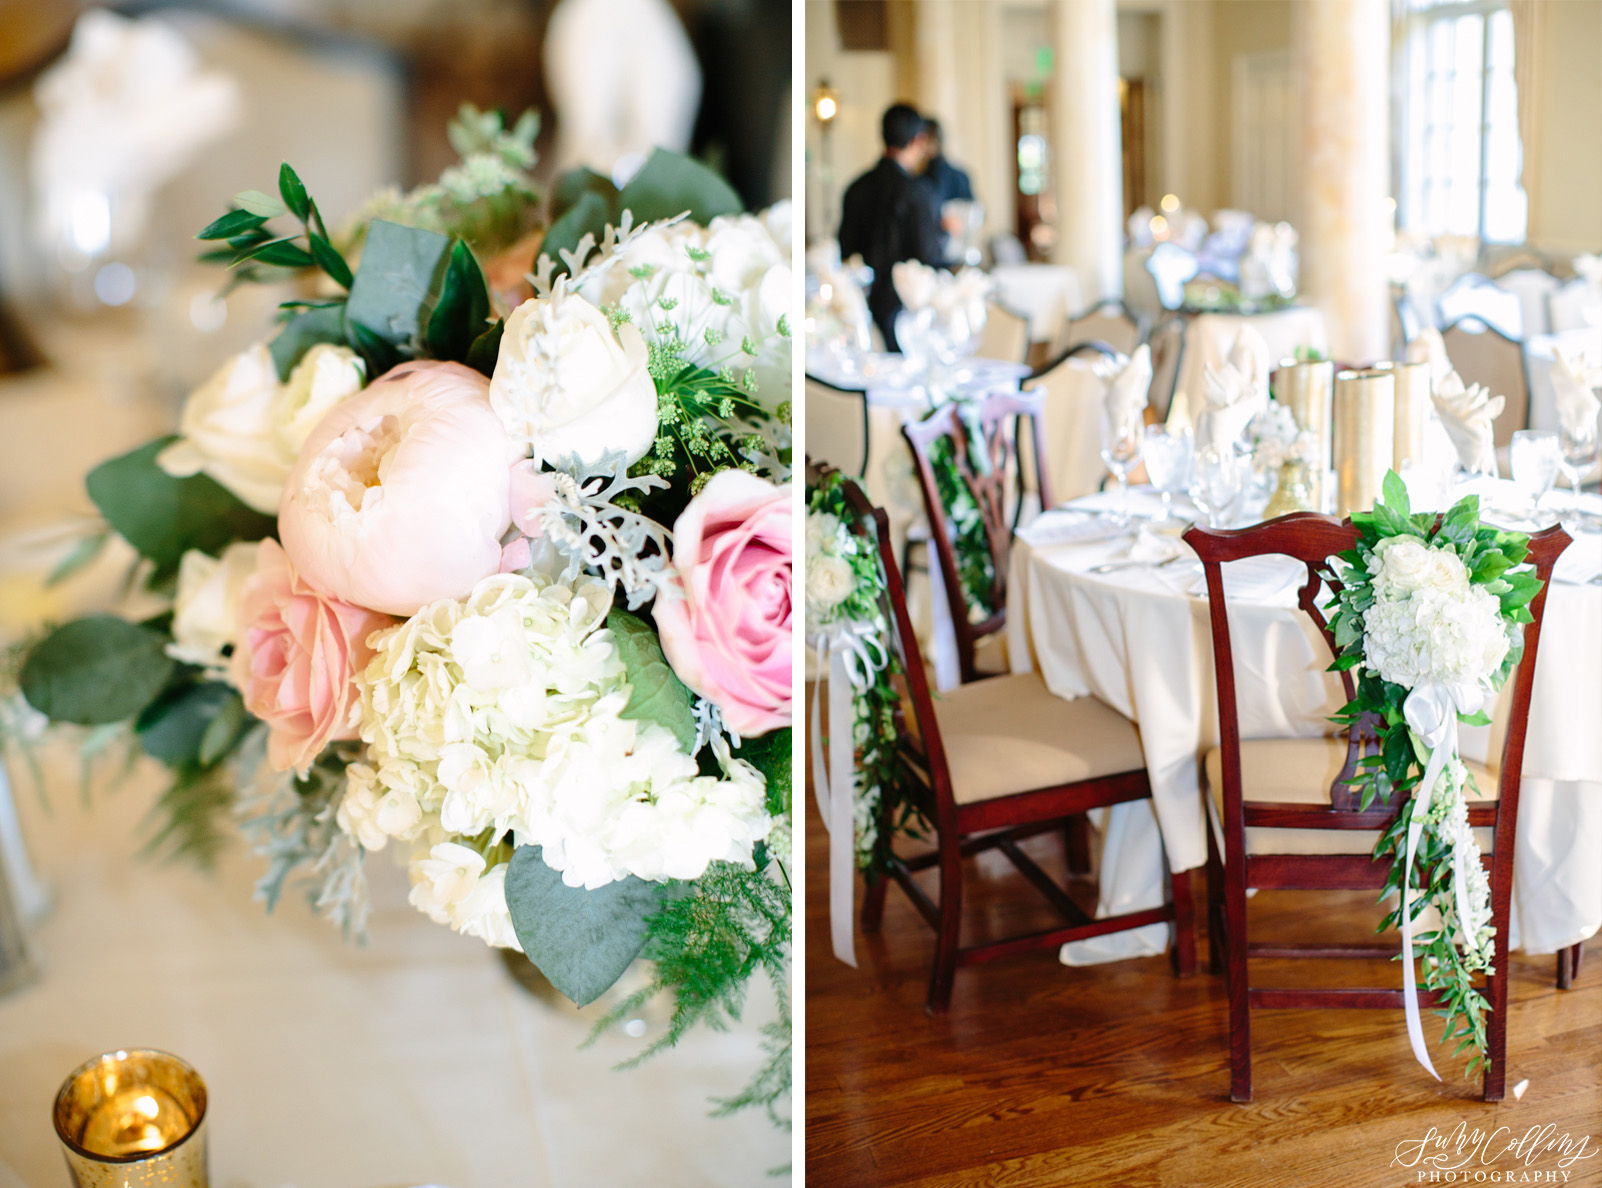 poses, indoor, romantic, spring, light and airy, natural light, ideas, passion, artistic, creative, inspiration, editorial, art, lighting, love, Knoxville, Tennessee, Cherokee country club, vibrant, colorful, bright, reception, flowers, table